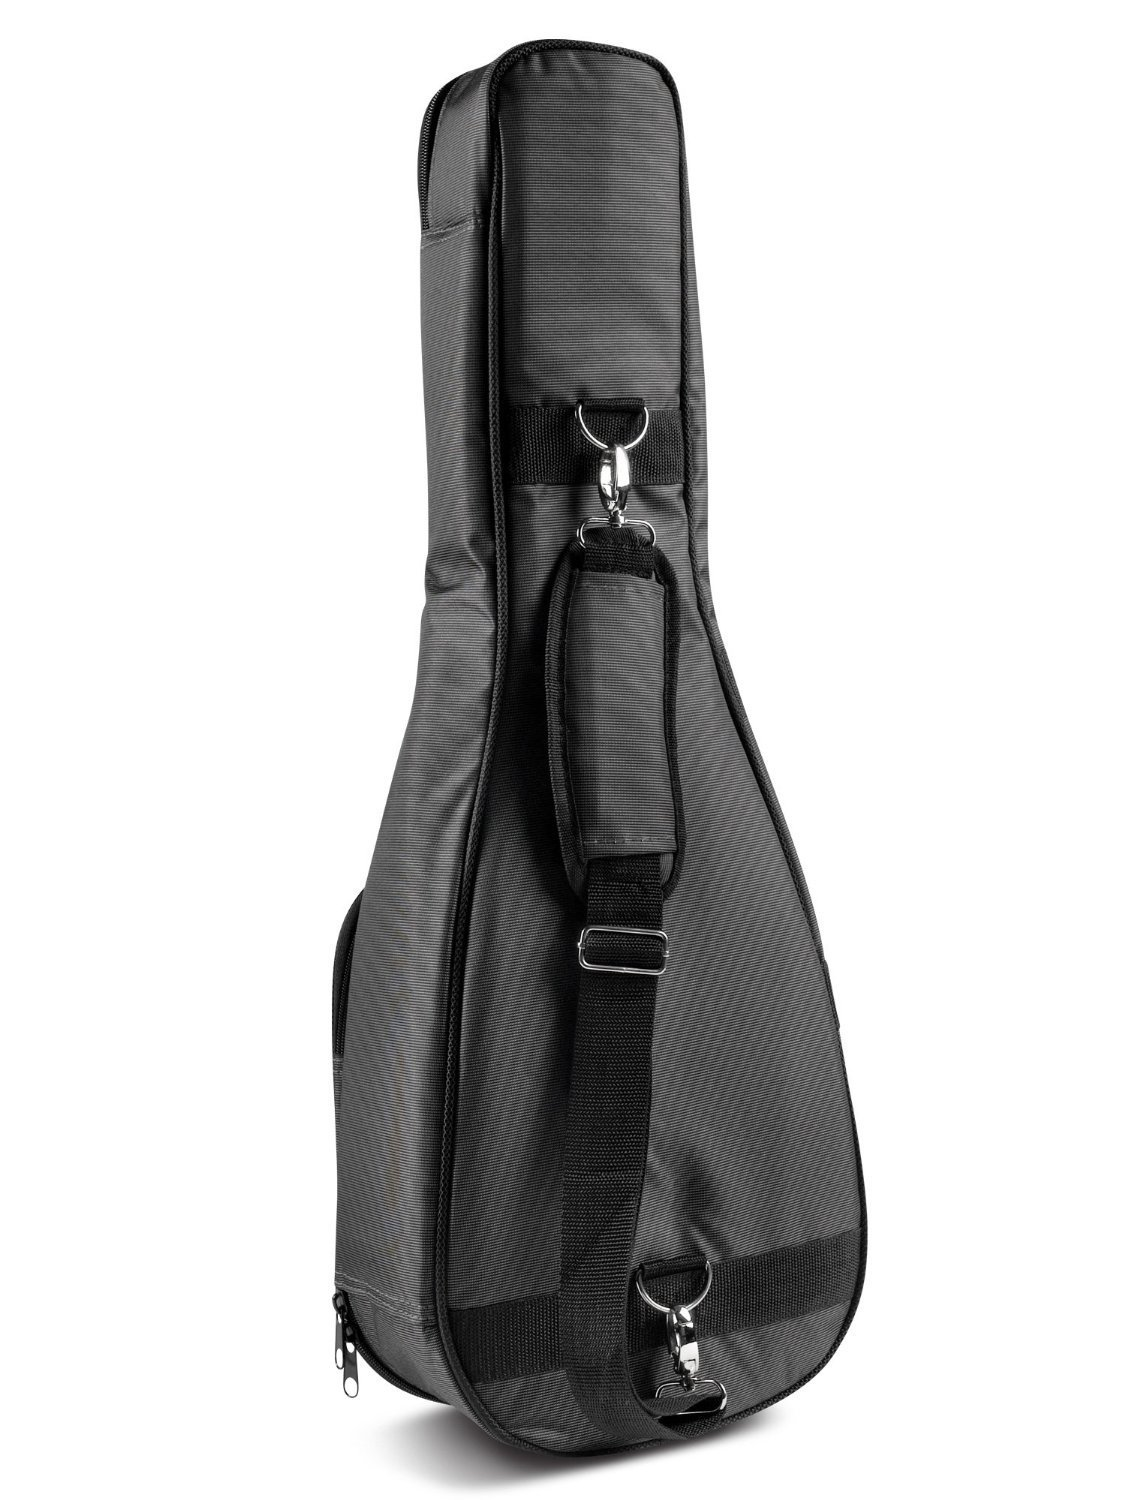 Cordoba Concert size Deluxe Gig Bag